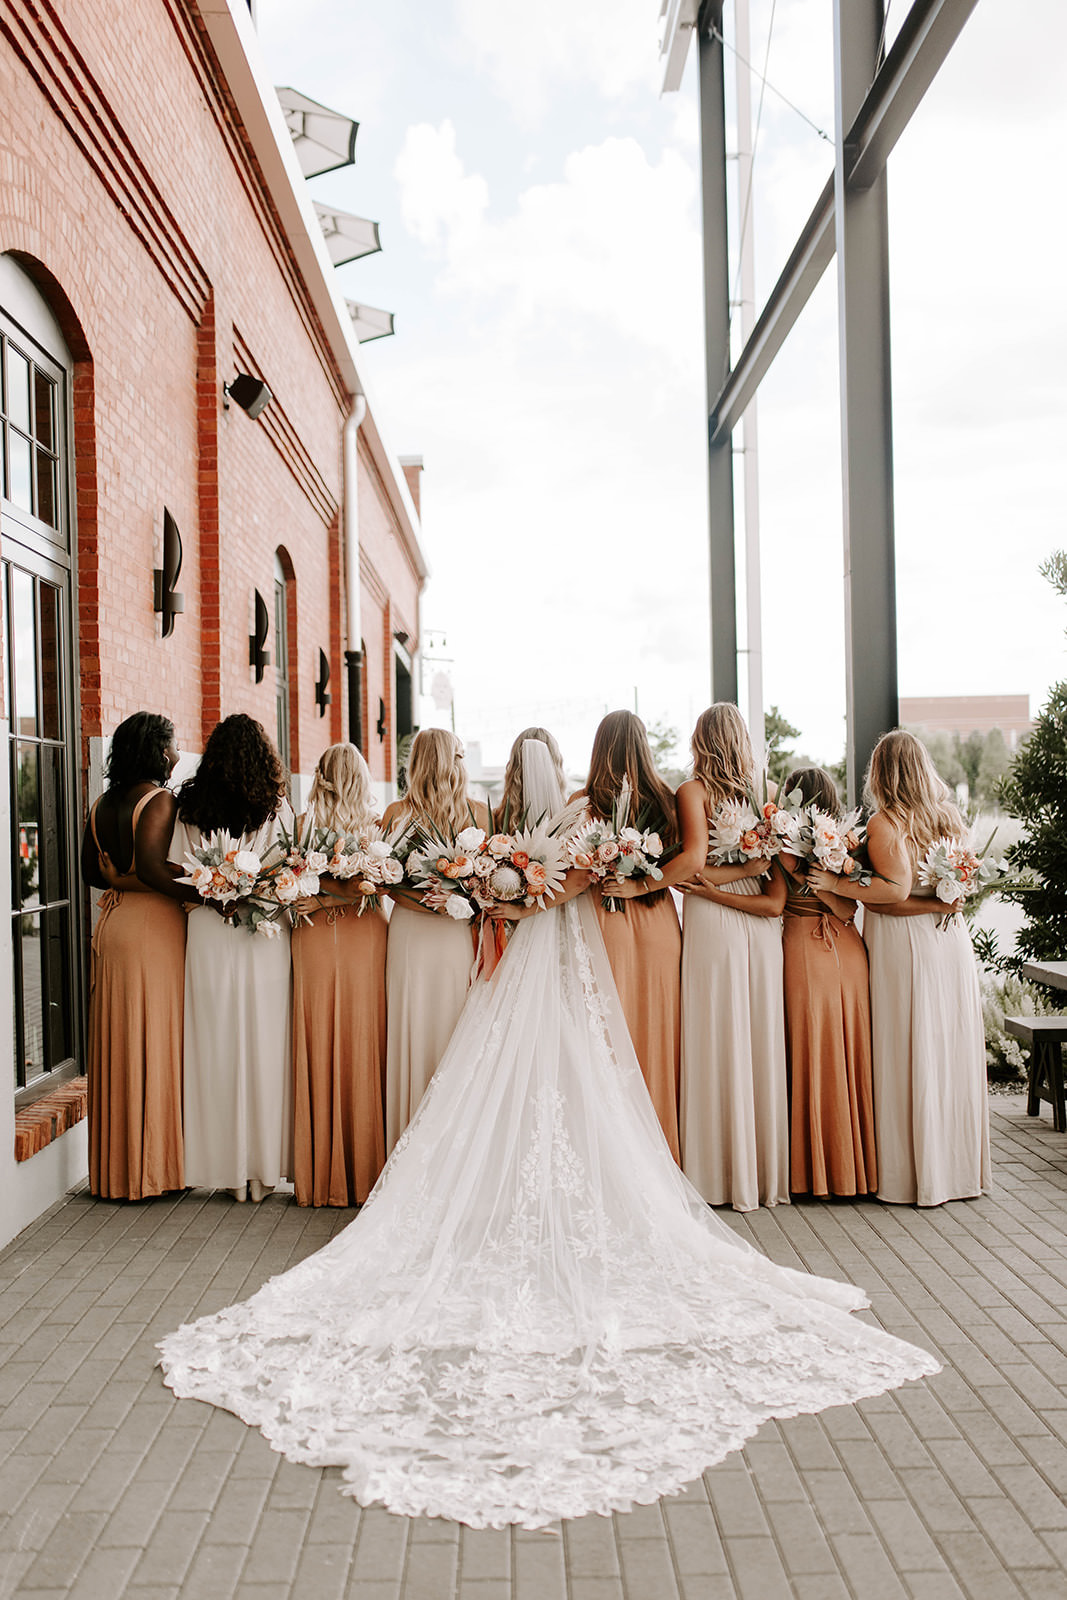 Creative Boho Bridal Party Portrait, Bridesmaids in Mix and Match Neutral and Sandy Blush Dresses Holding Palm Tree Leaves, Blush Pink Roses Floral Bouquet, Bride in Martina Liana Lace Wedding Dress with Romantic Cathedral Veil   Tampa Bay Industrial Wedding Venue Armature Works   Wedding Planner Coastal Coordinating